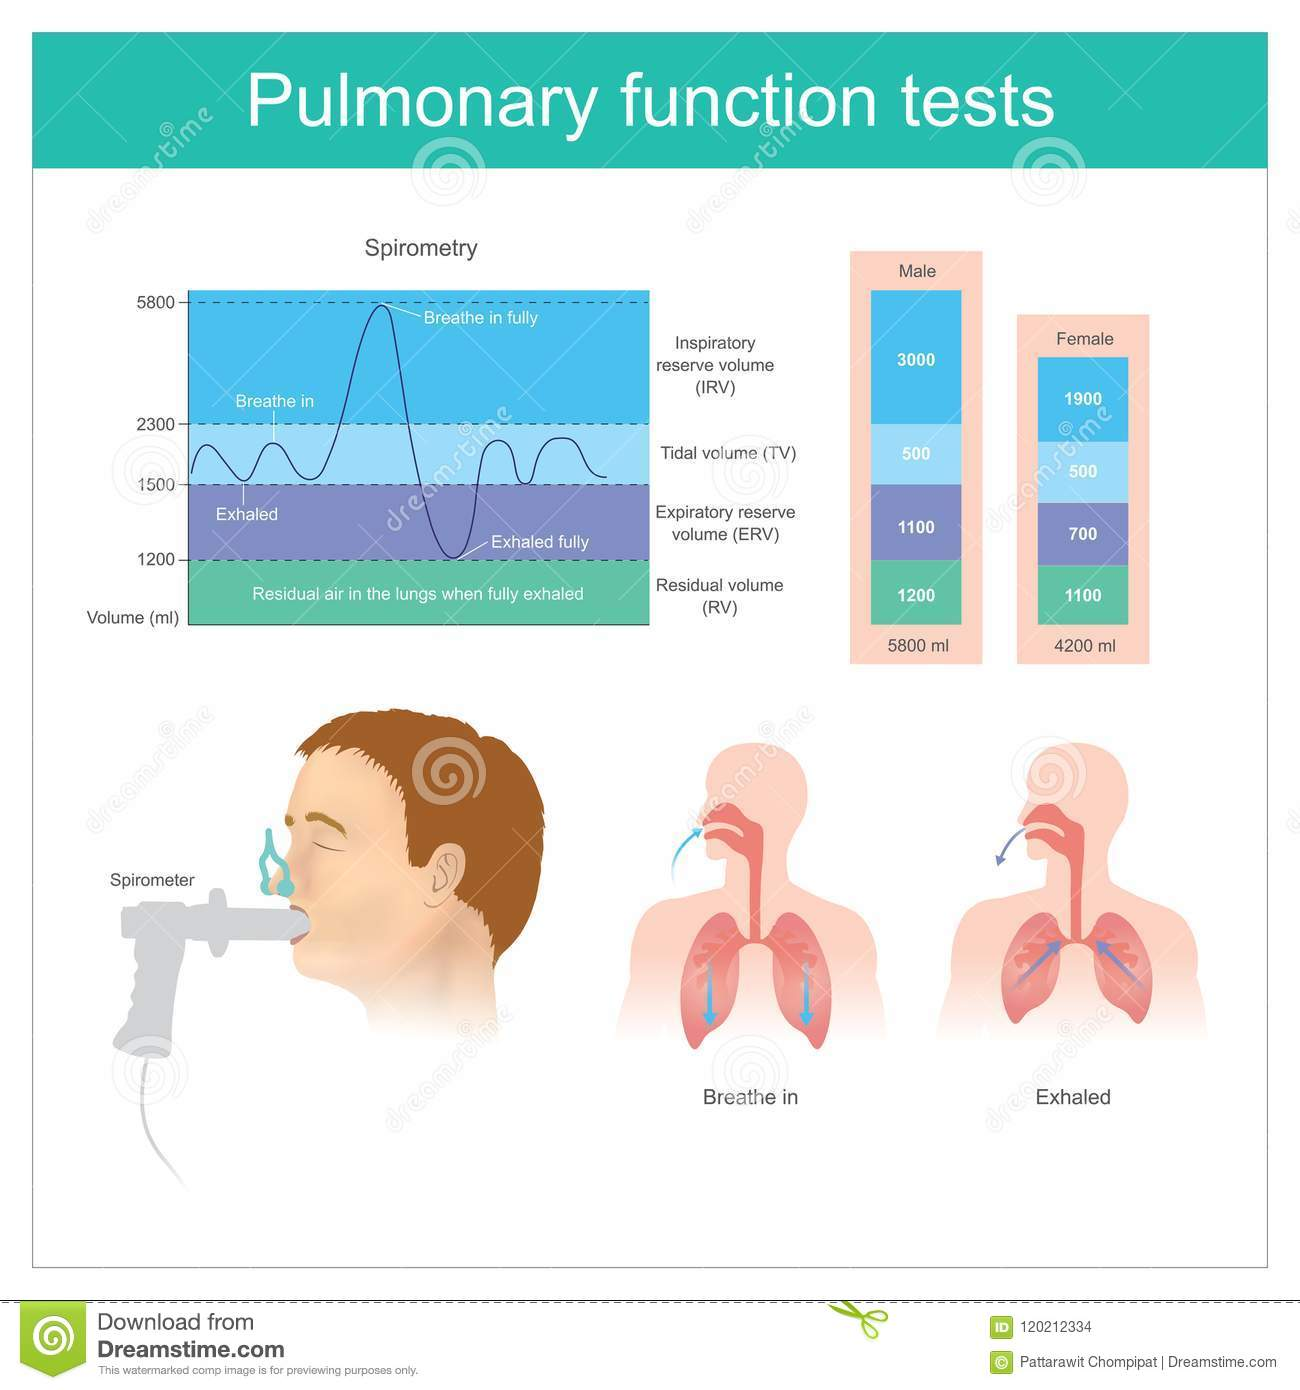 Pulmonary Function Tests Testing For Volume Of Air In The Lungs